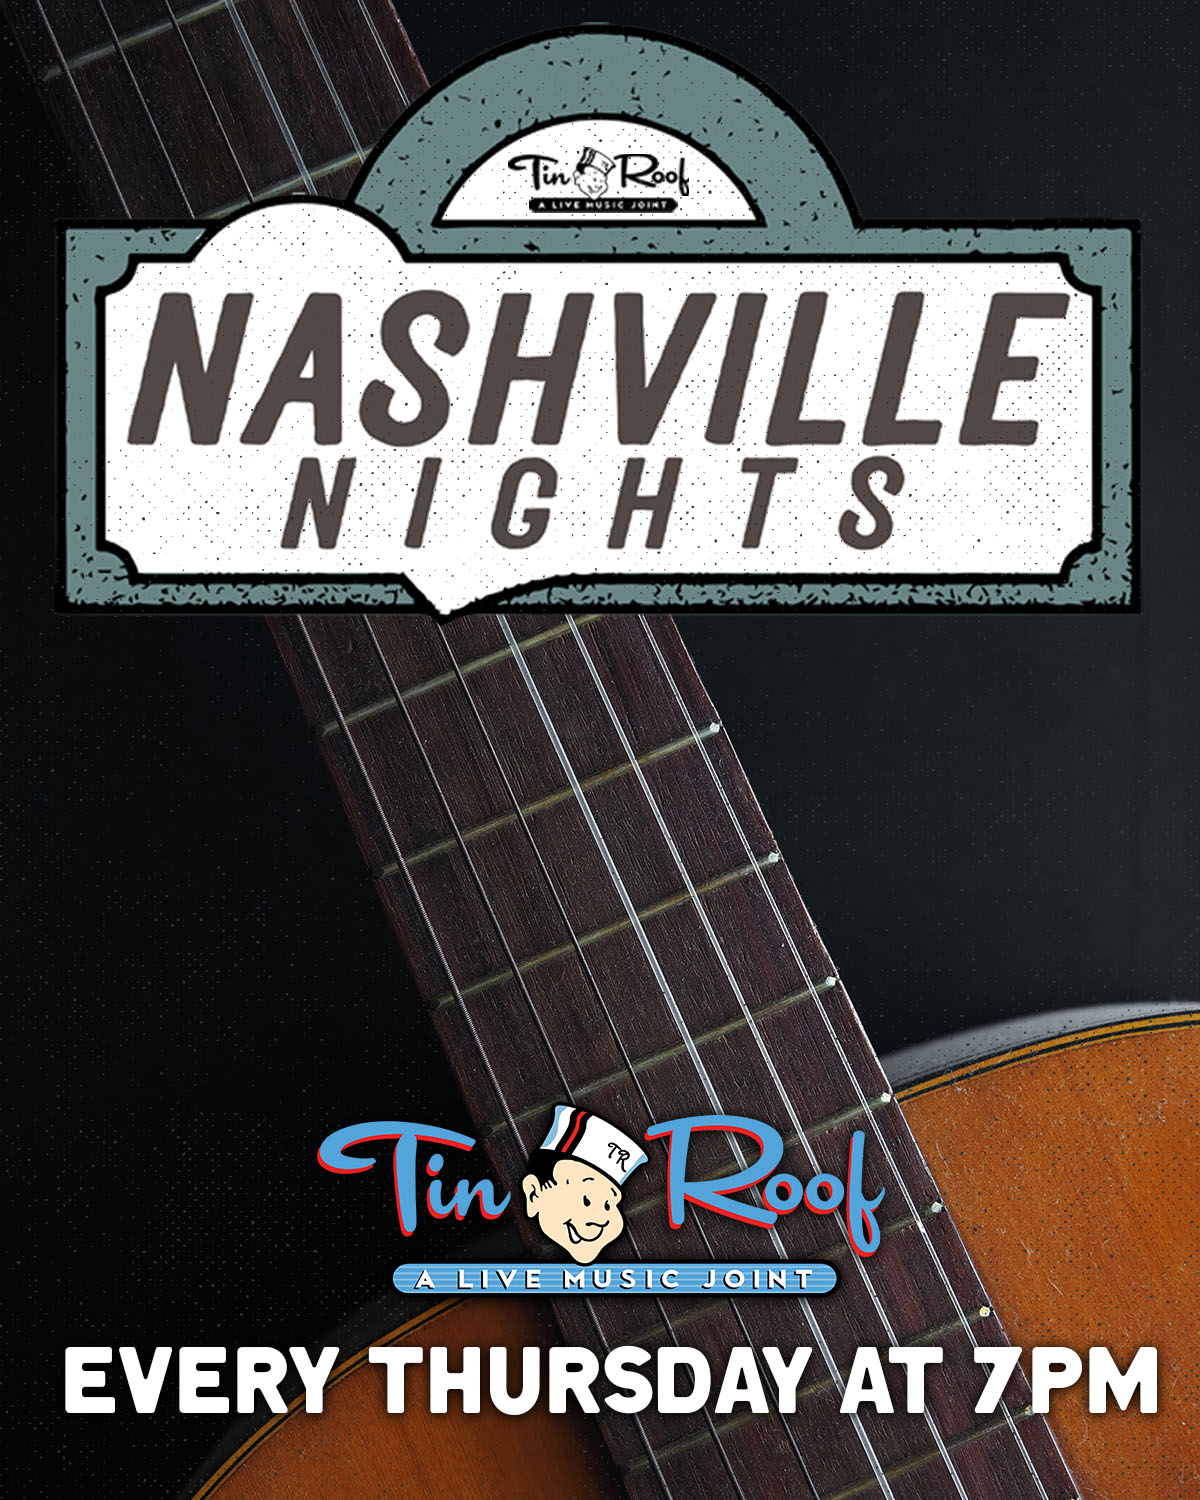 Nashville Nights featuring The Matt Bennett Band